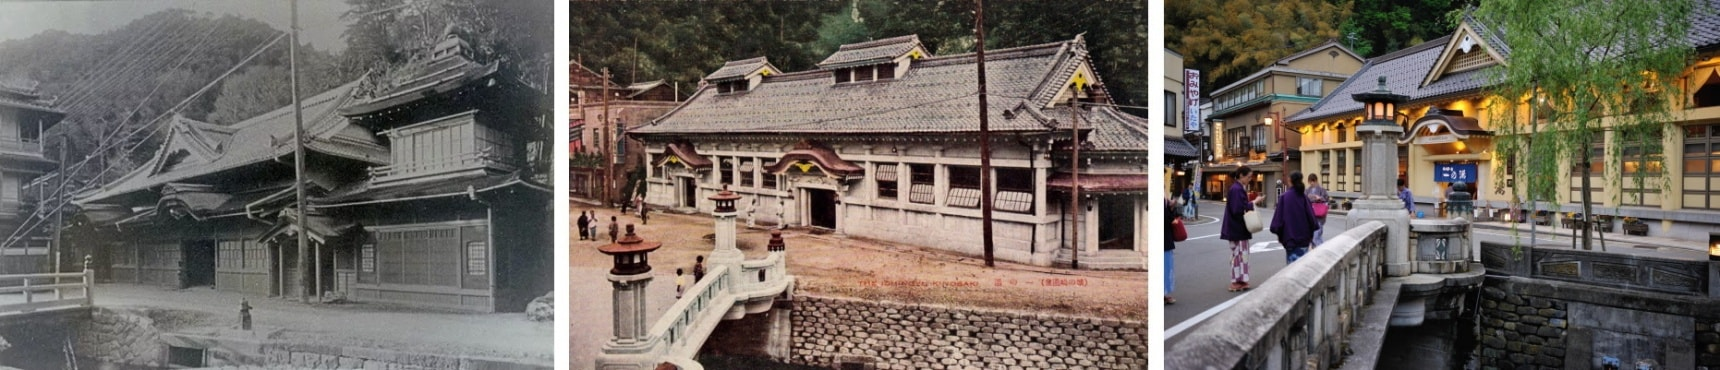 Kinosaki Onsen Celebrates 1300th Anniversary